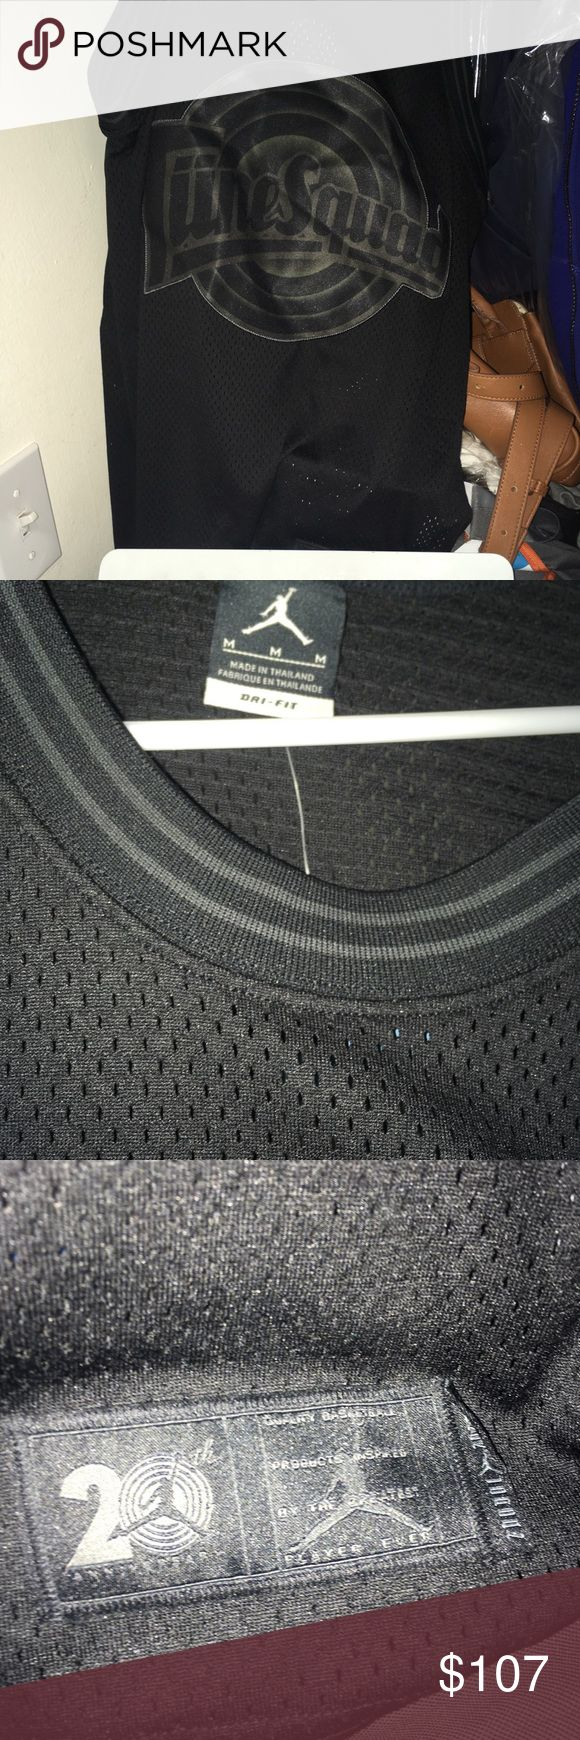 AIR JORDAN RETRO 11 SPACE JAM TUNE SQUAD JERSEY YOU'RE PURCHASING A JORDAN 11 TUNE SQUAD BLACK OUT JERSEY  BRAND NEW/NEVER WORN   COMES WITH OG ALL  CAN PRINT OUT RECEIPT FROM FOOTLOCKER IF NECESSARY   WILL COME SHIPPED DOUBLE BOXED VIA 2-3 DAY PRIORITY SHIPPING USPS   MESSAGE ME WITH ANY QUESTIONS!  THANKS Nike Shirts Tank Tops